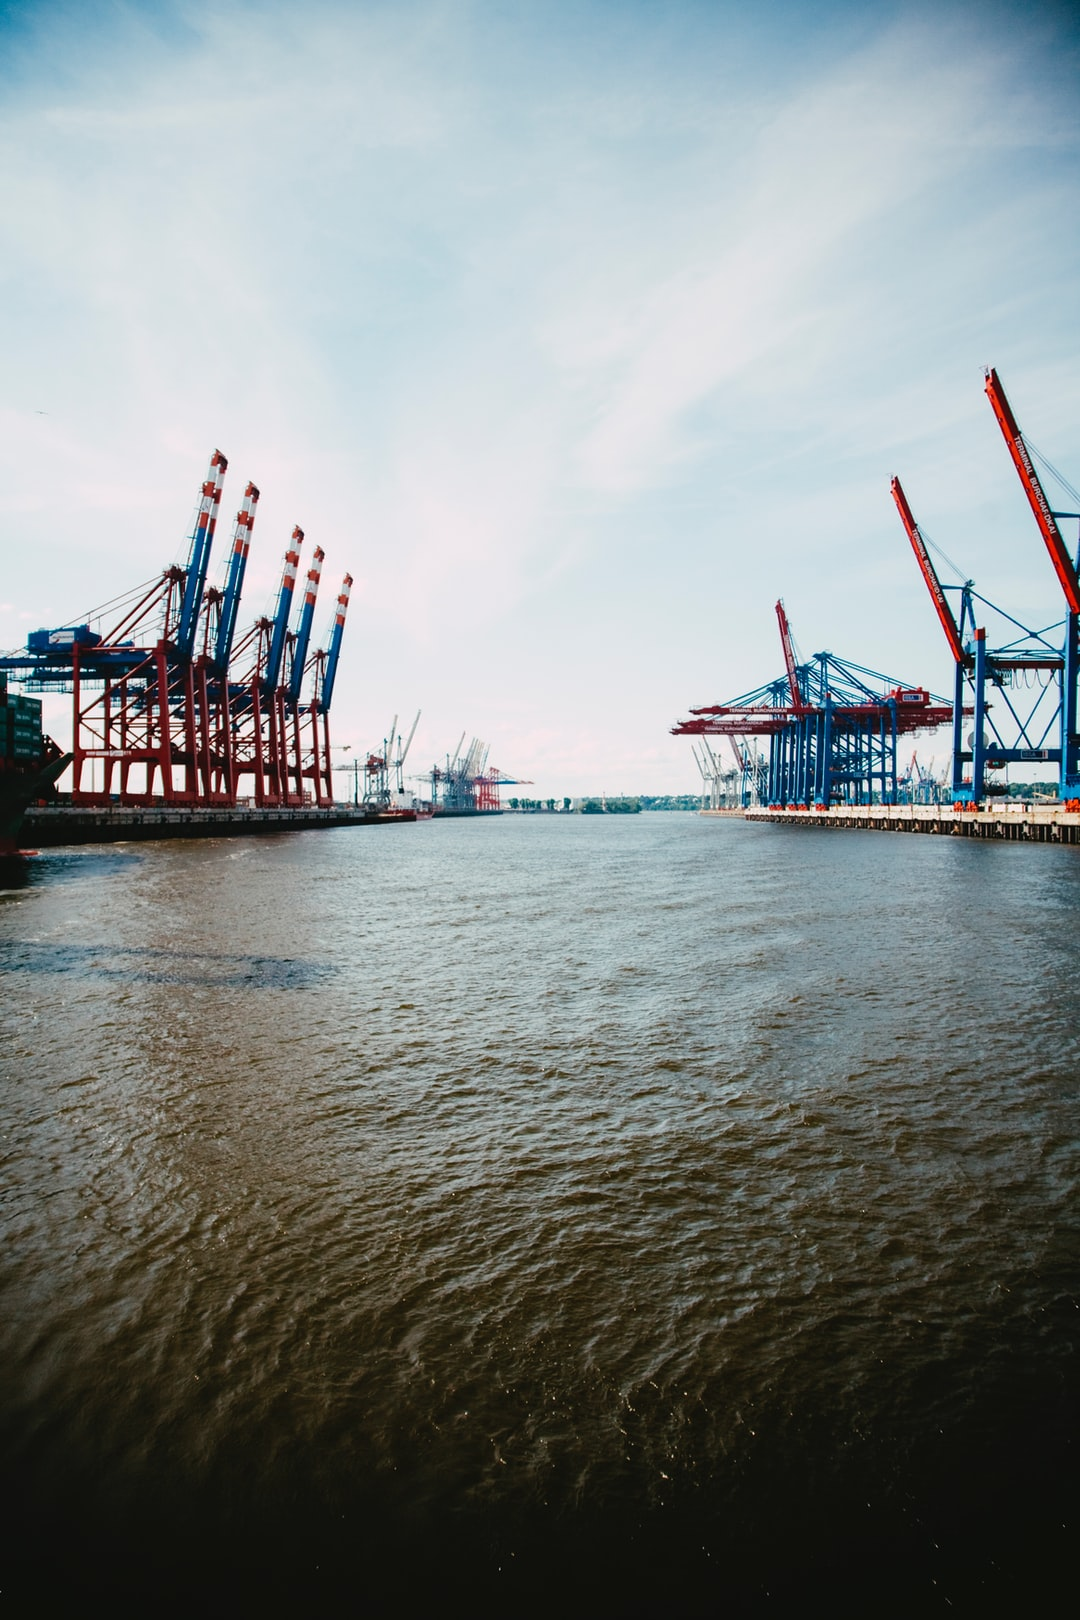 Container terminal for global logistic transport